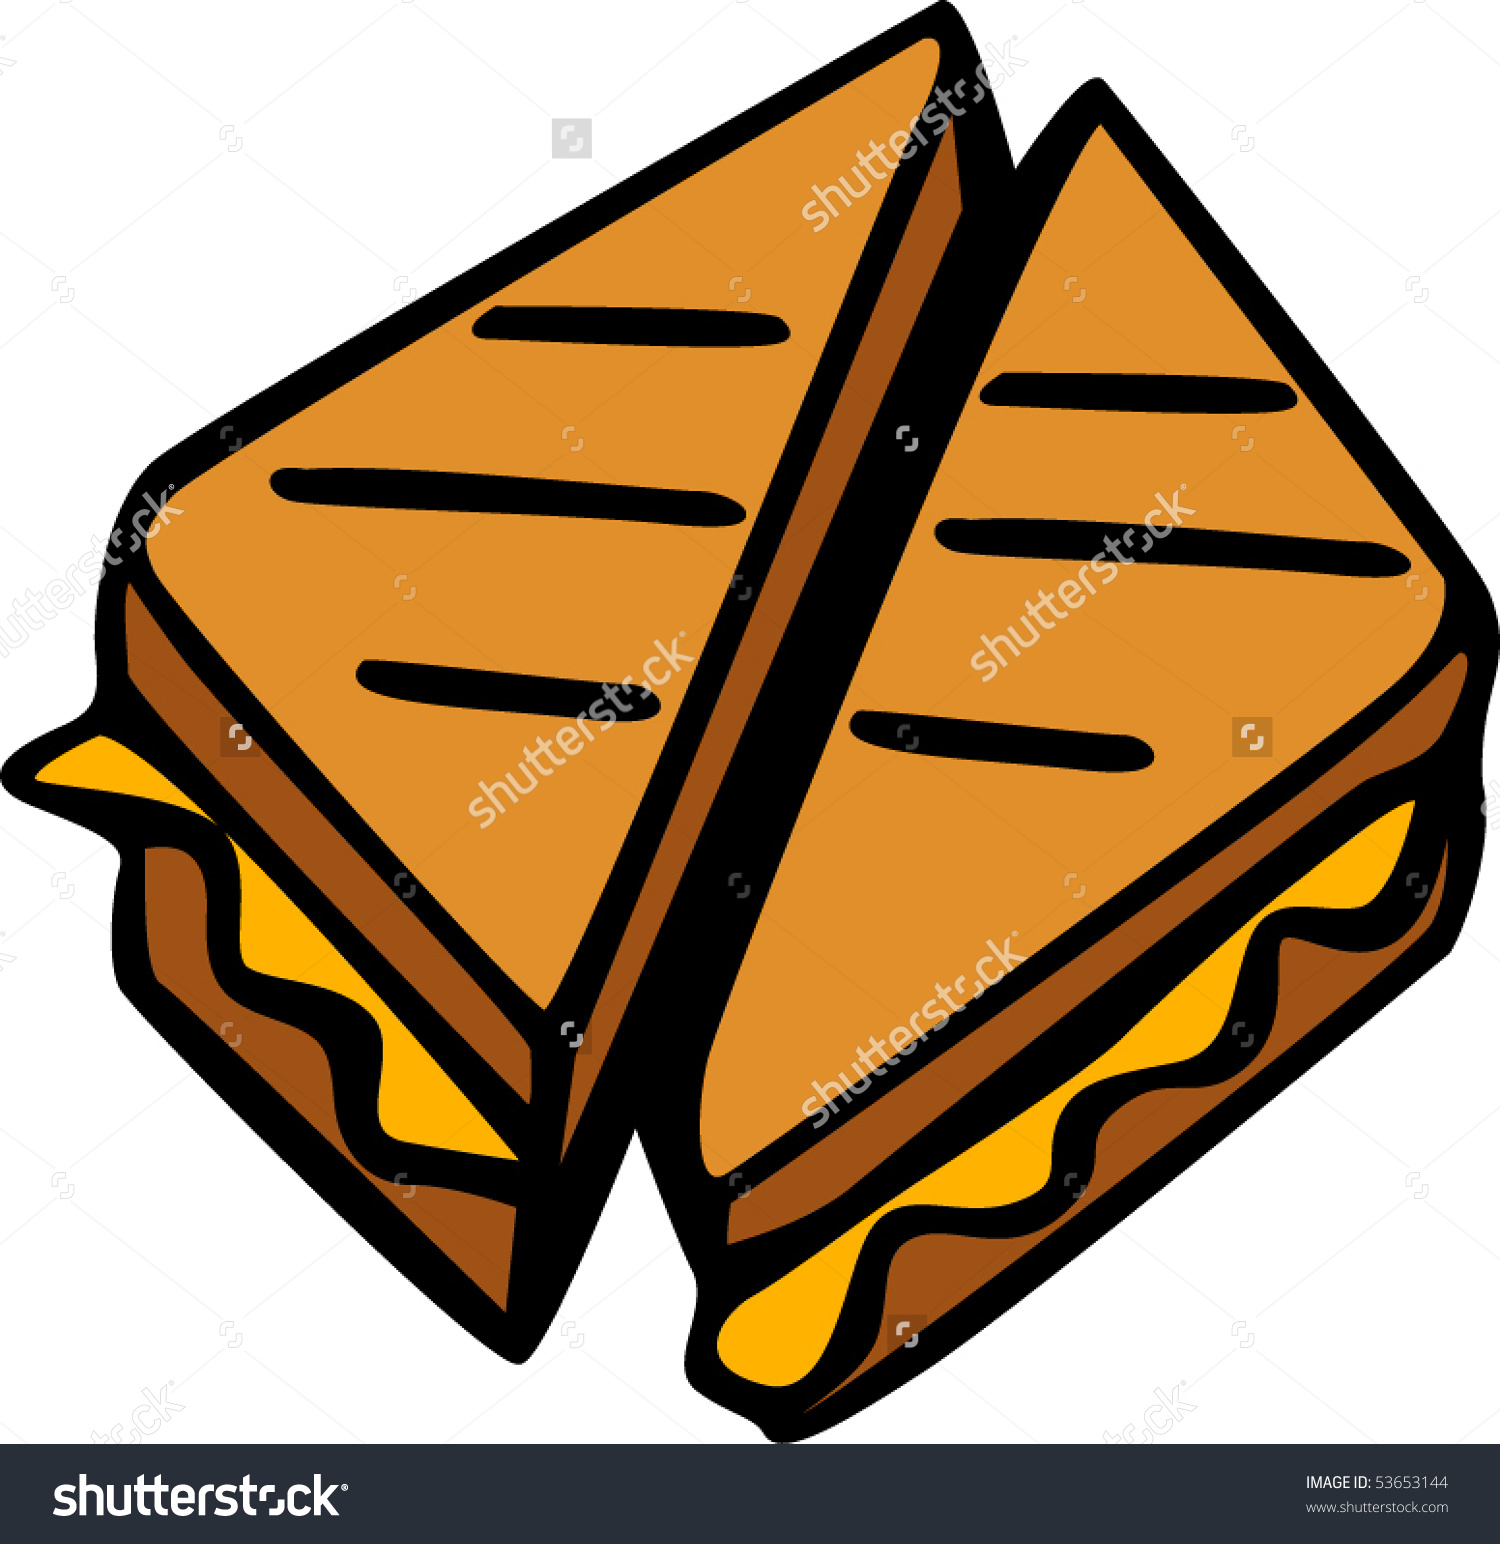 grilled cheese drawing at getdrawings com free for personal use rh getdrawings com  grilled cheese and tomato soup clipart